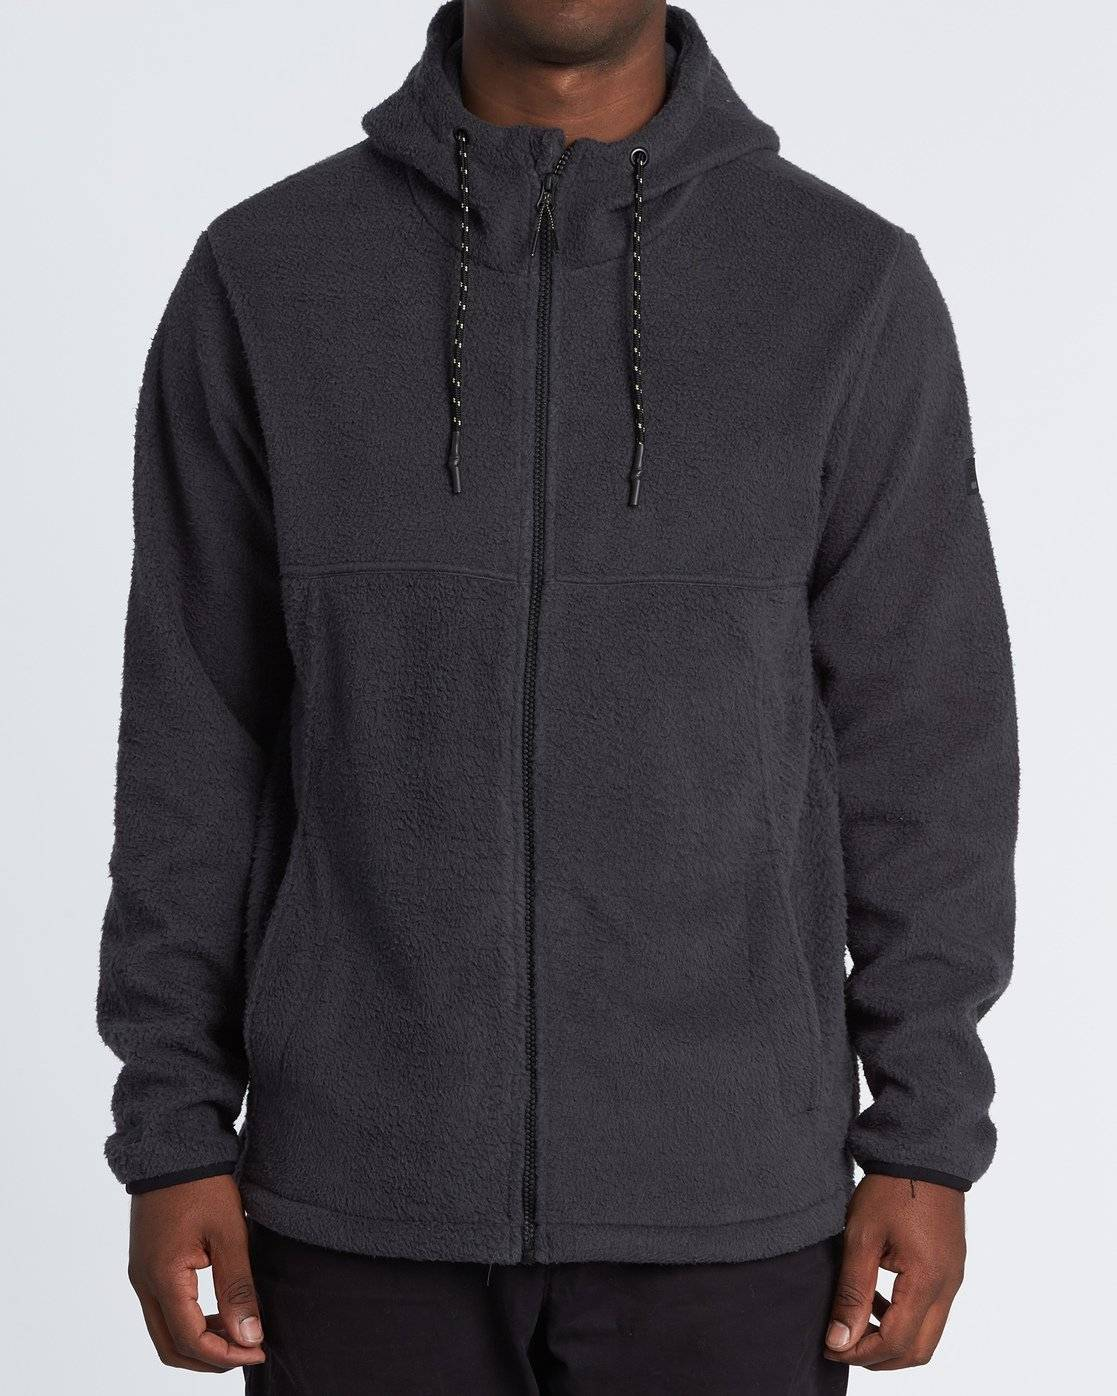 Billabong Boundary Brushed Zip Hoodie  - Black - Size: Small